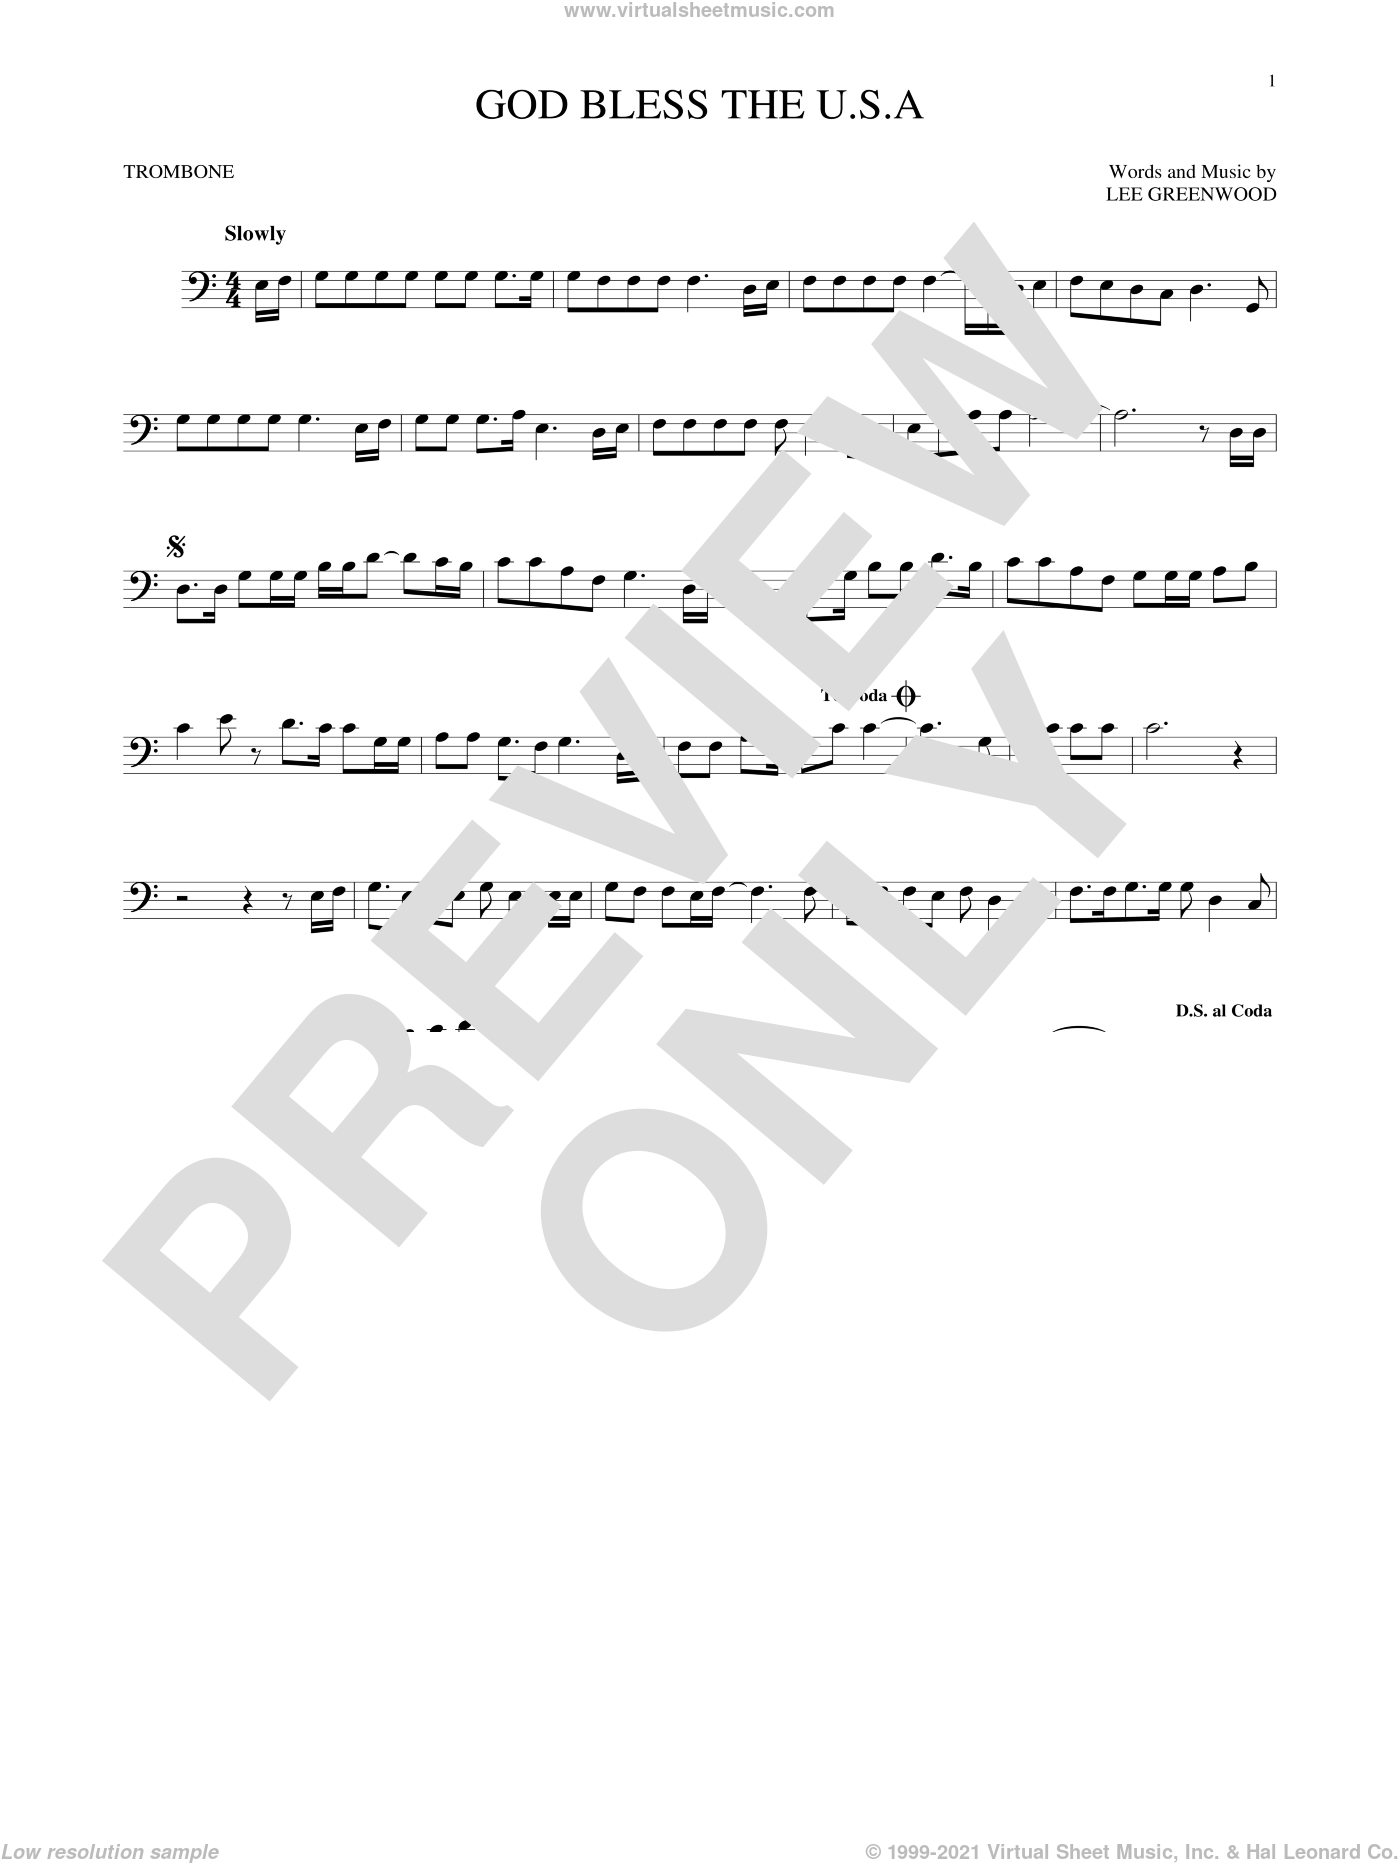 God Bless The U.S.A. sheet music for trombone solo by Lee Greenwood, intermediate skill level